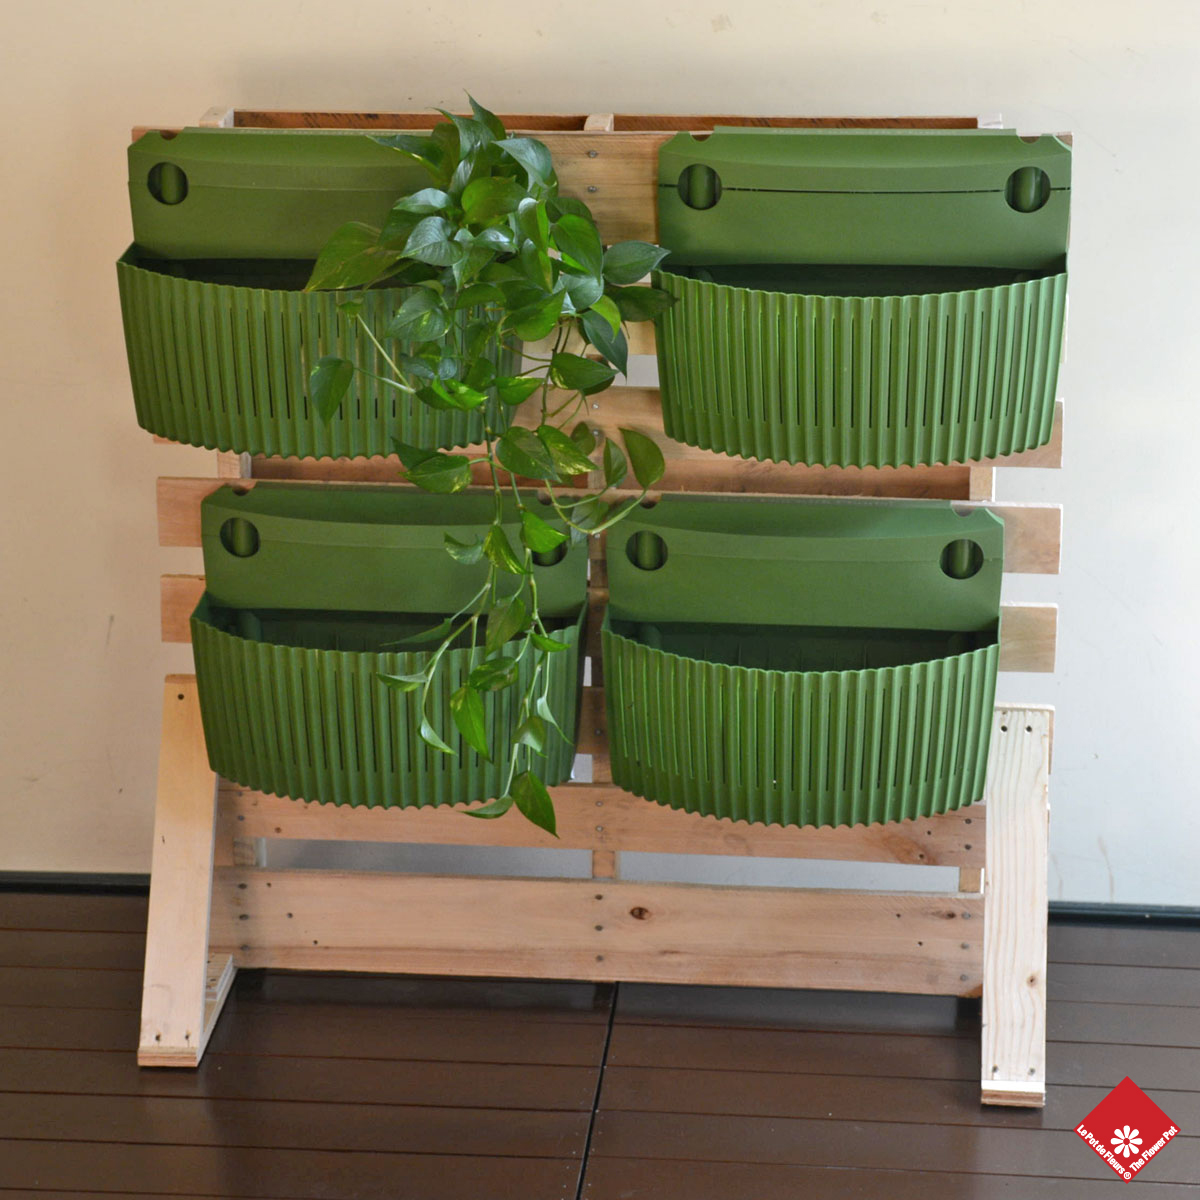 Woolly Pocket has different colour wall planters for your unique living wall design in Montreal.